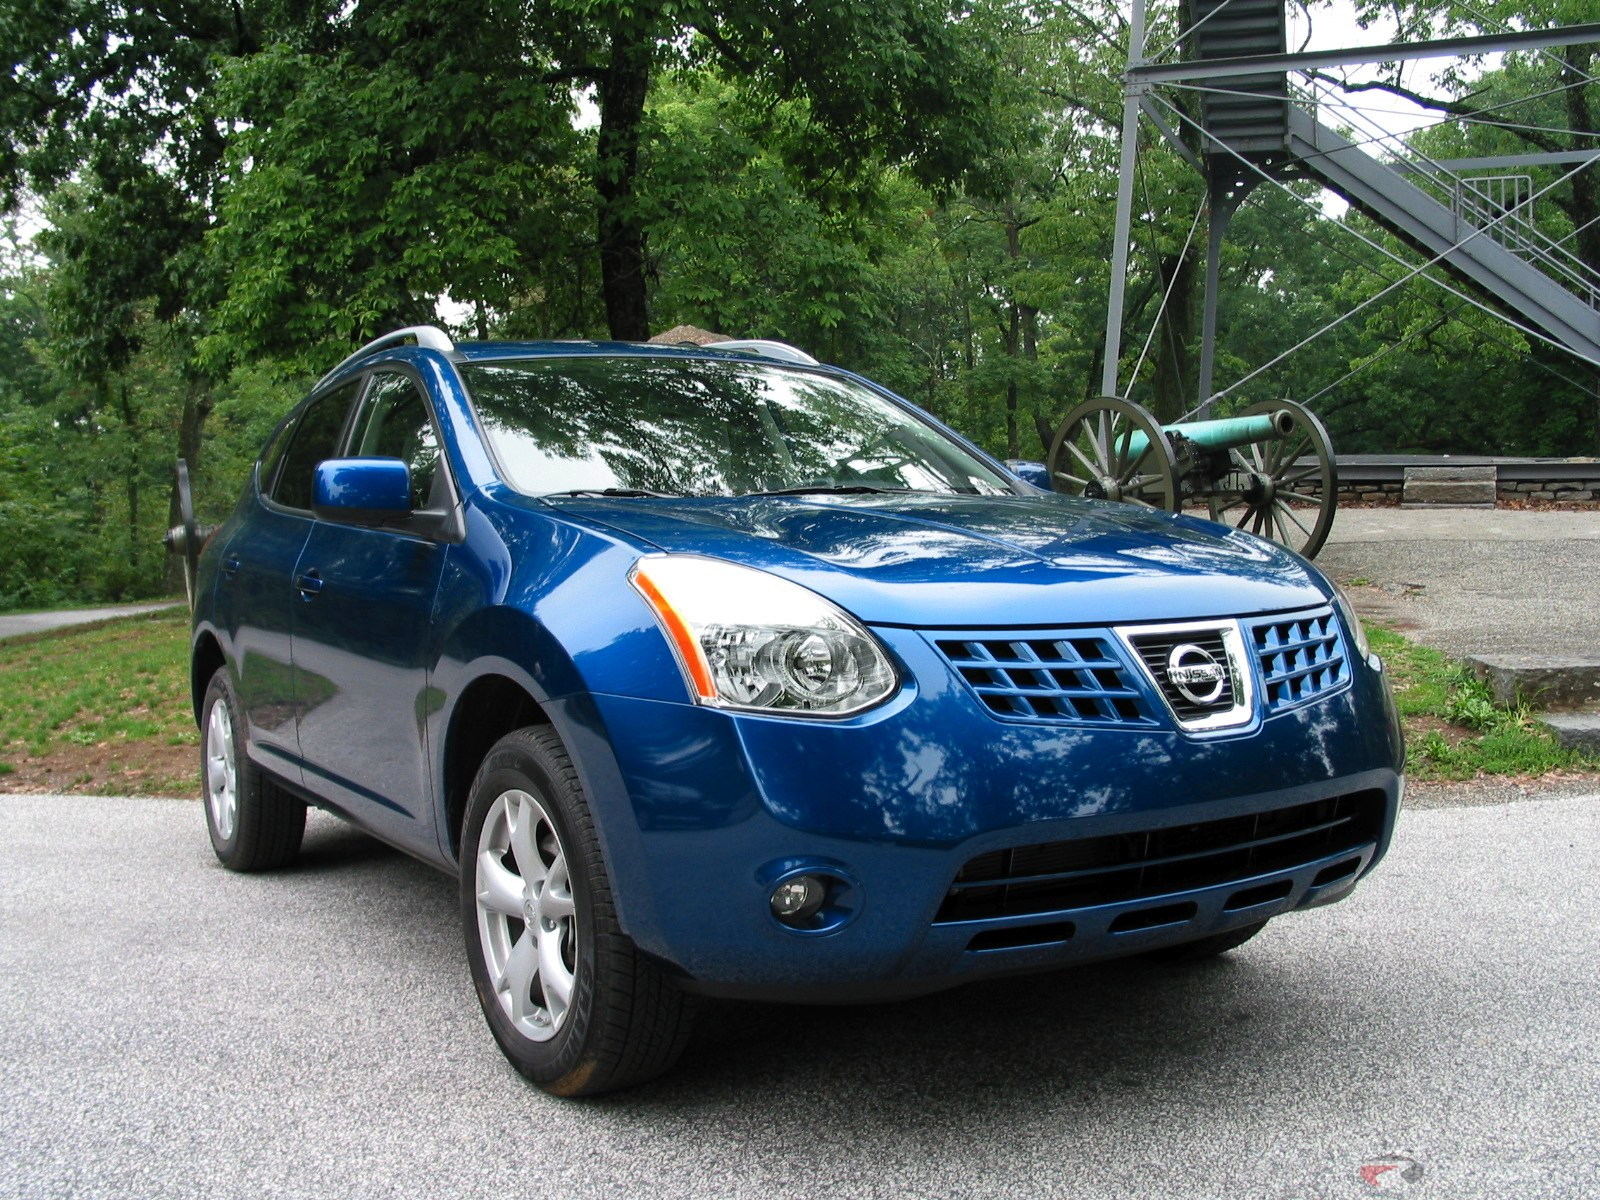 world automotive center nissan rogue is a compact crossover suv. Black Bedroom Furniture Sets. Home Design Ideas